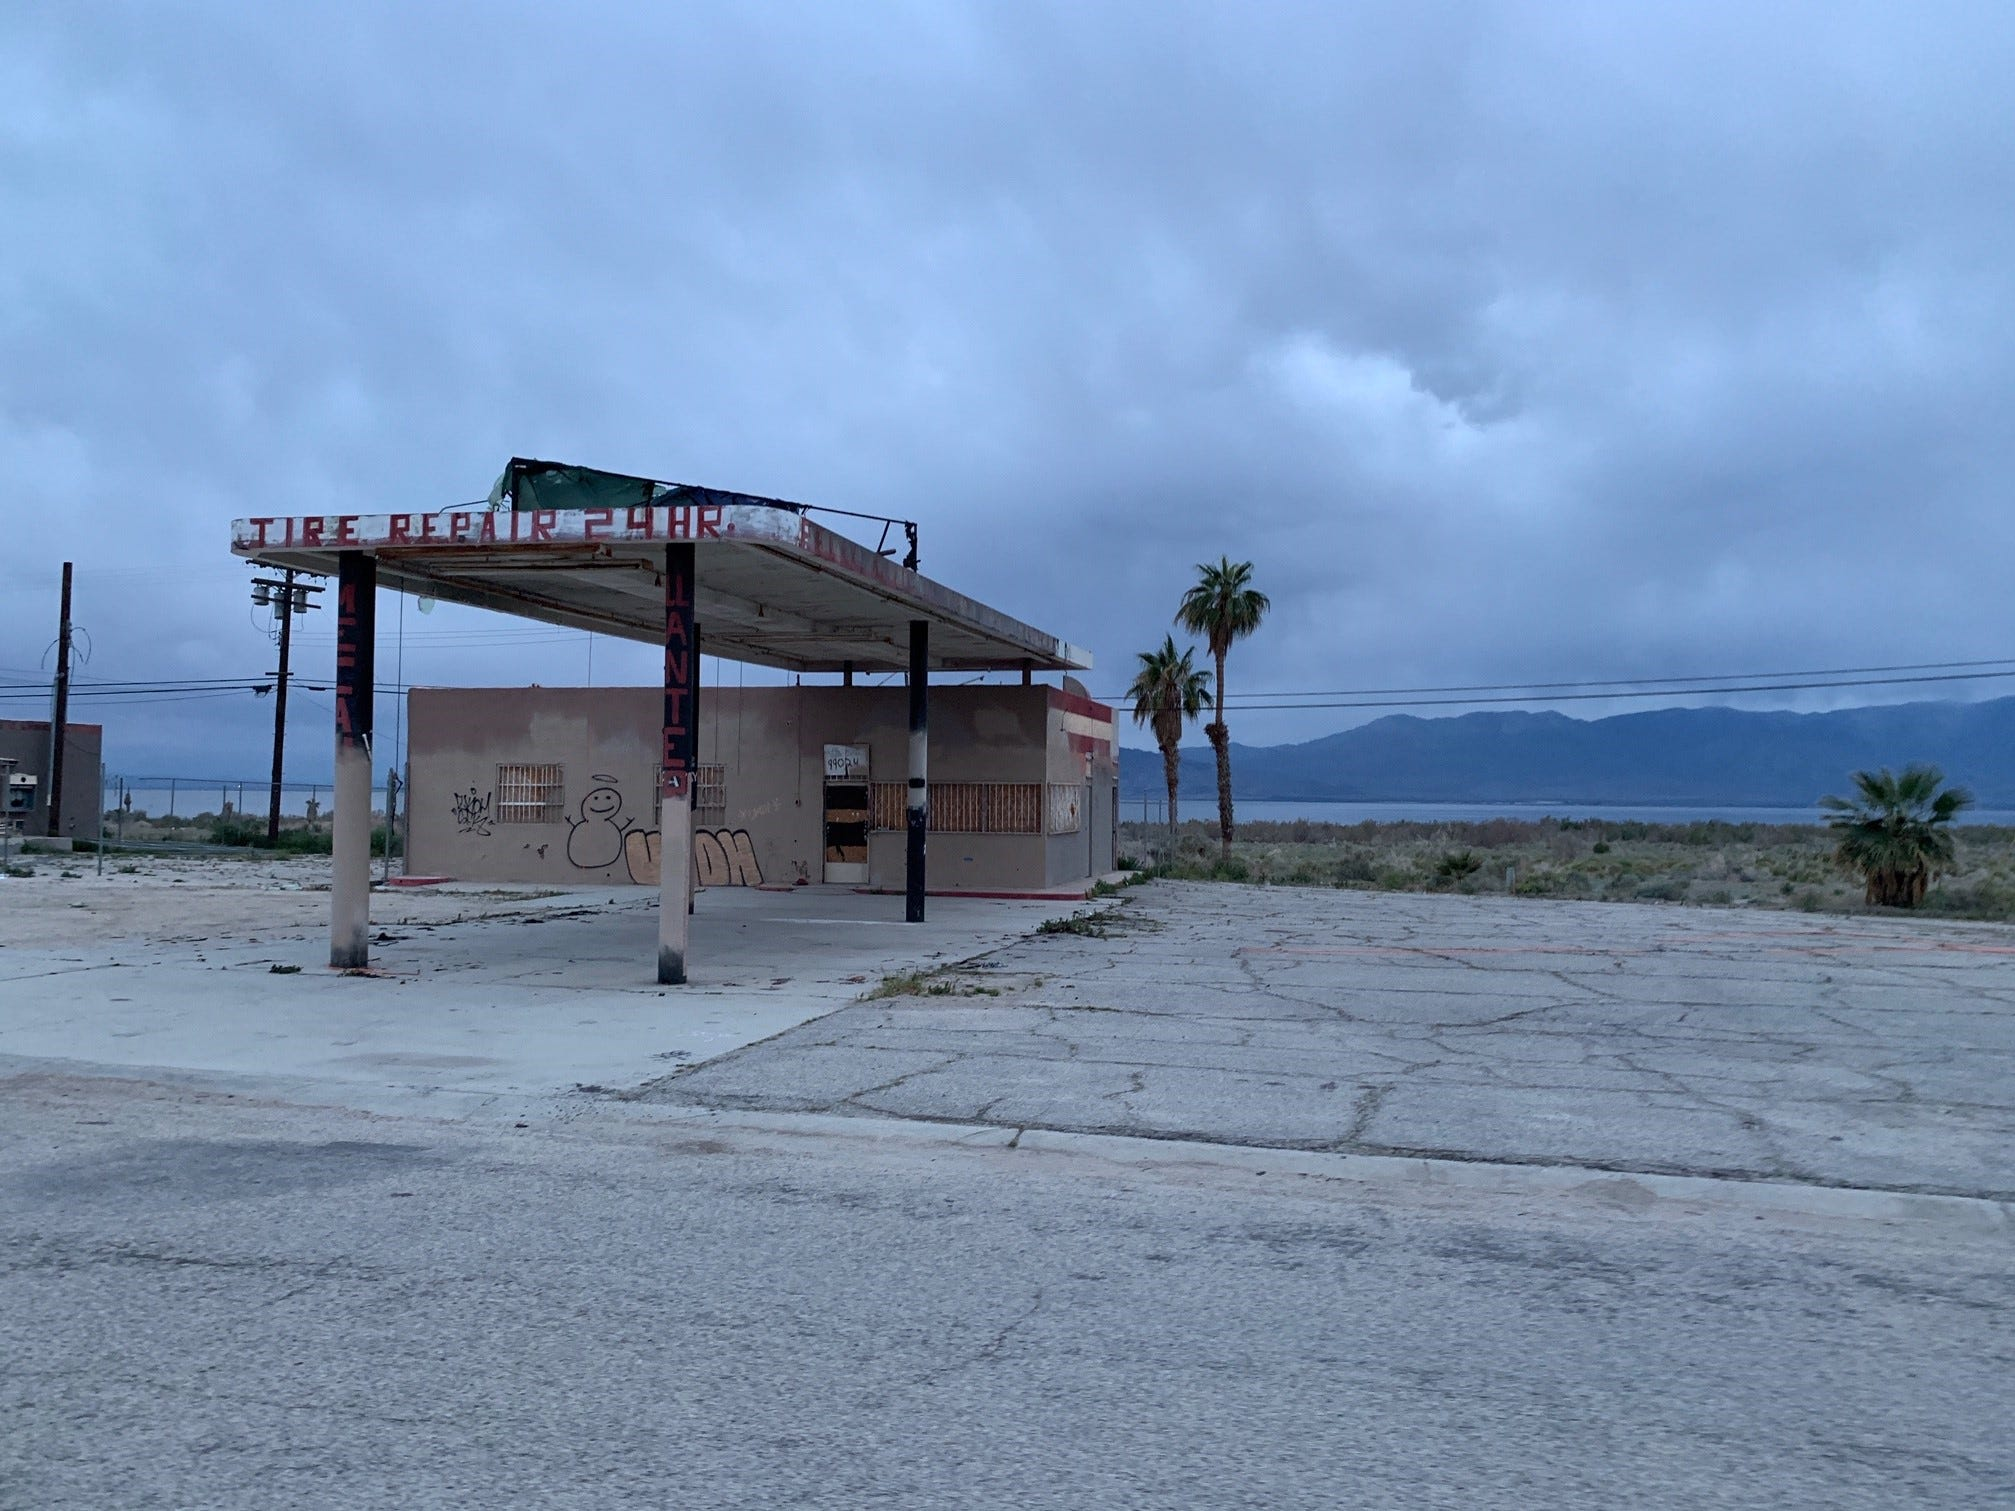 Artist Eric Mack's Desert X piece 'Halter' was once a collection of multi-colored fabric fastened to a derelict gas station at the shore of the Salton Sea, but the piece disappeared on March 11. Photo courtesy of Chris Taylor.